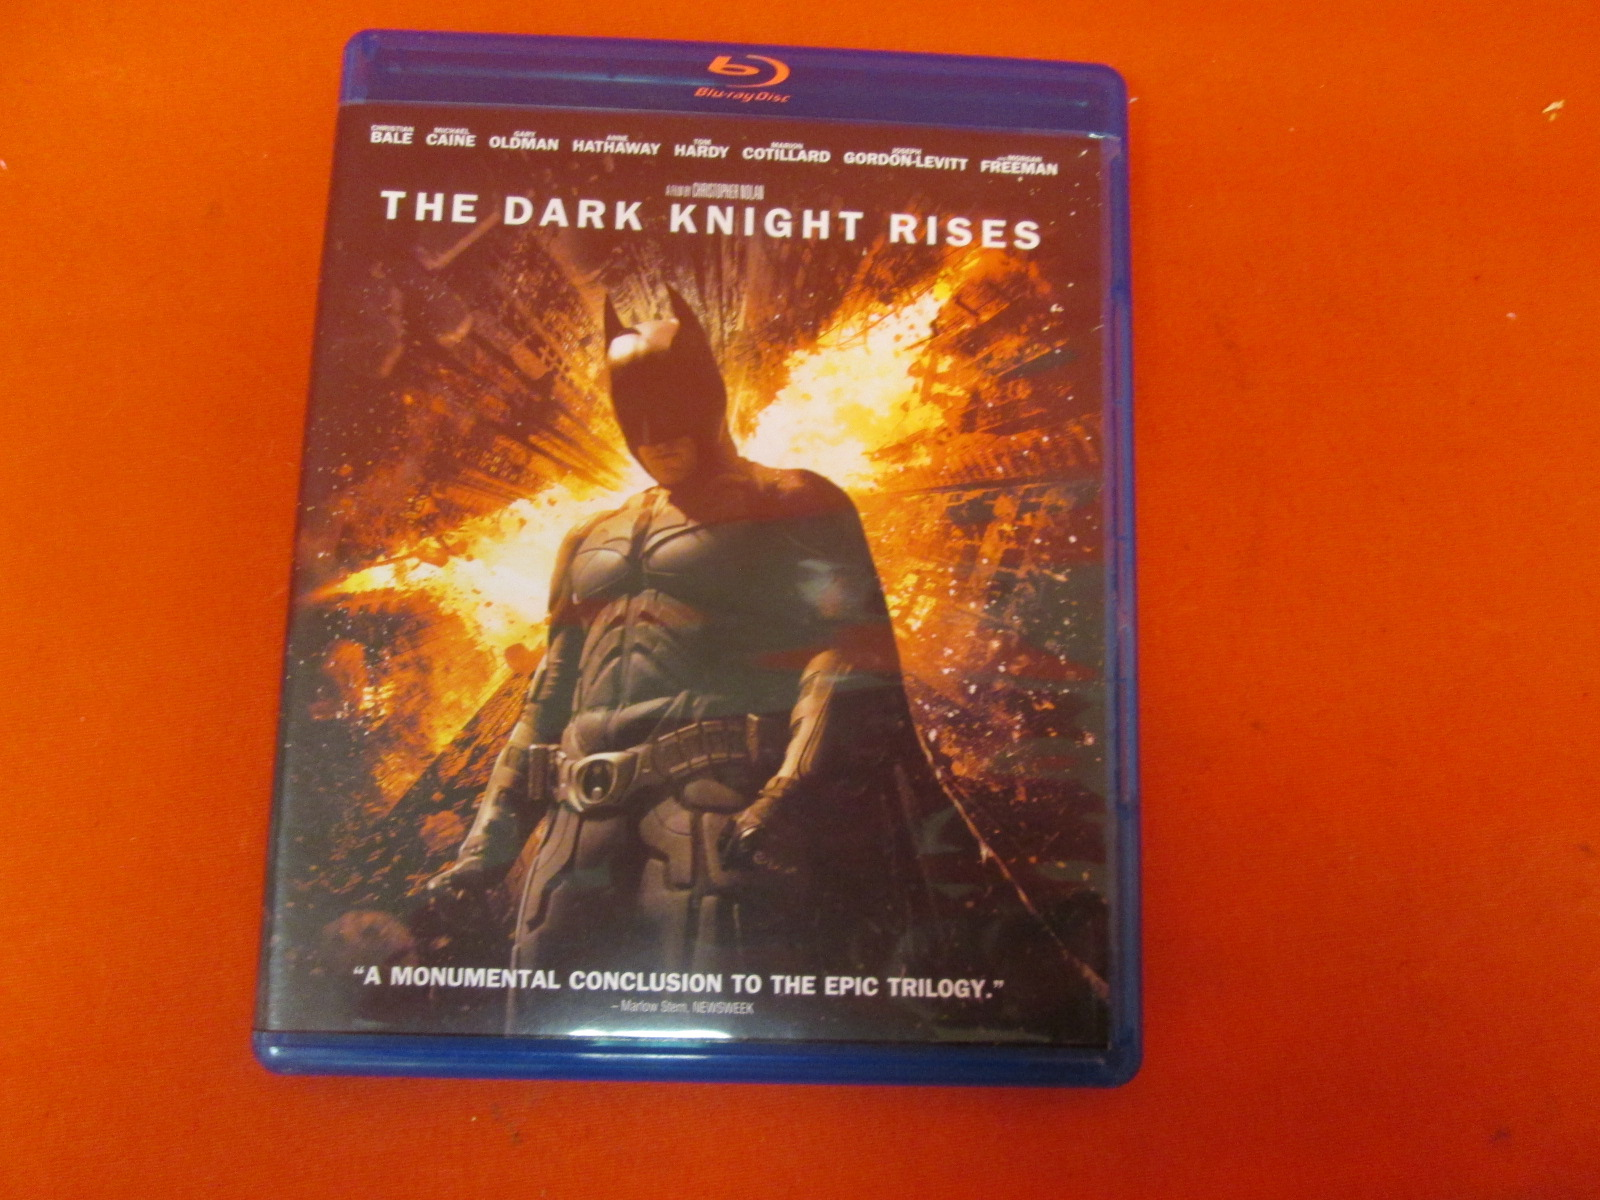 The Dark Knight Rises On Blu-Ray